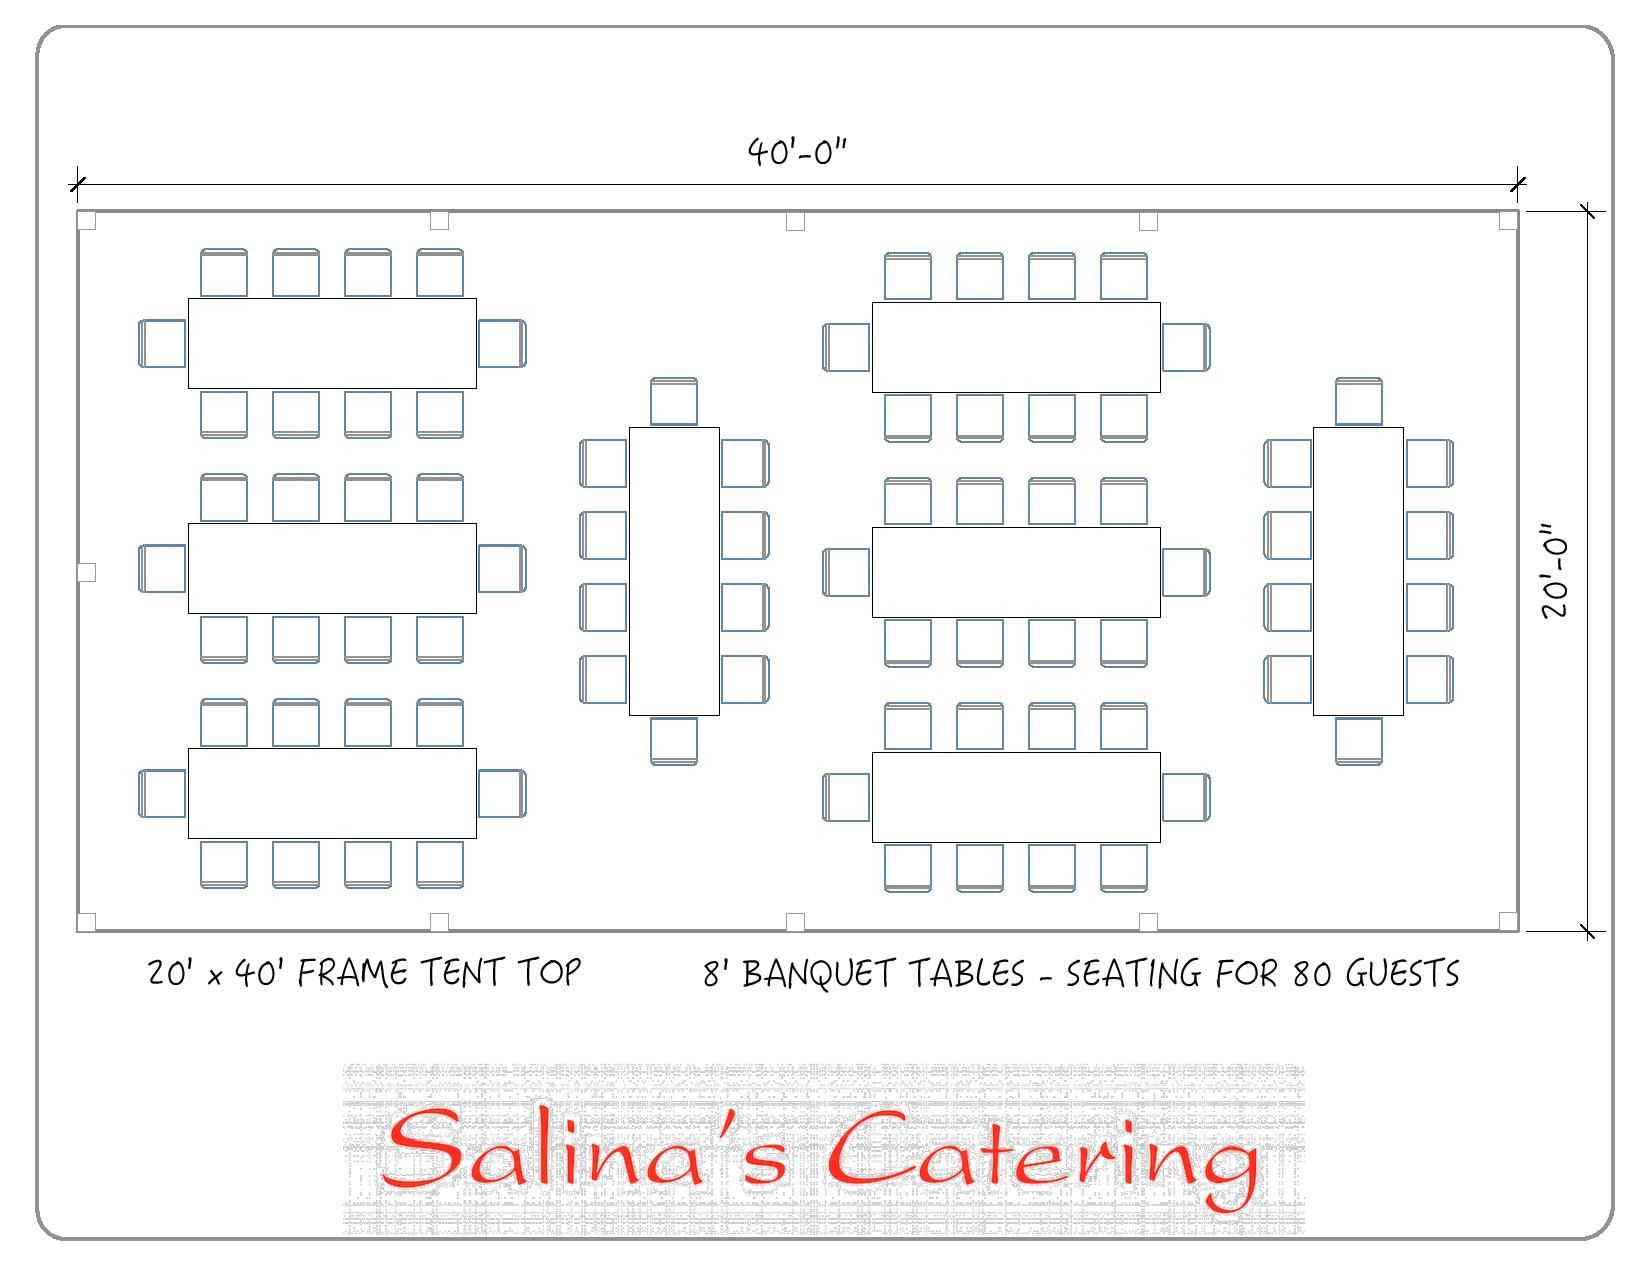 With this layout you will be able to seat 80 guests fortably at 8 of our 8 foot long banquet tables